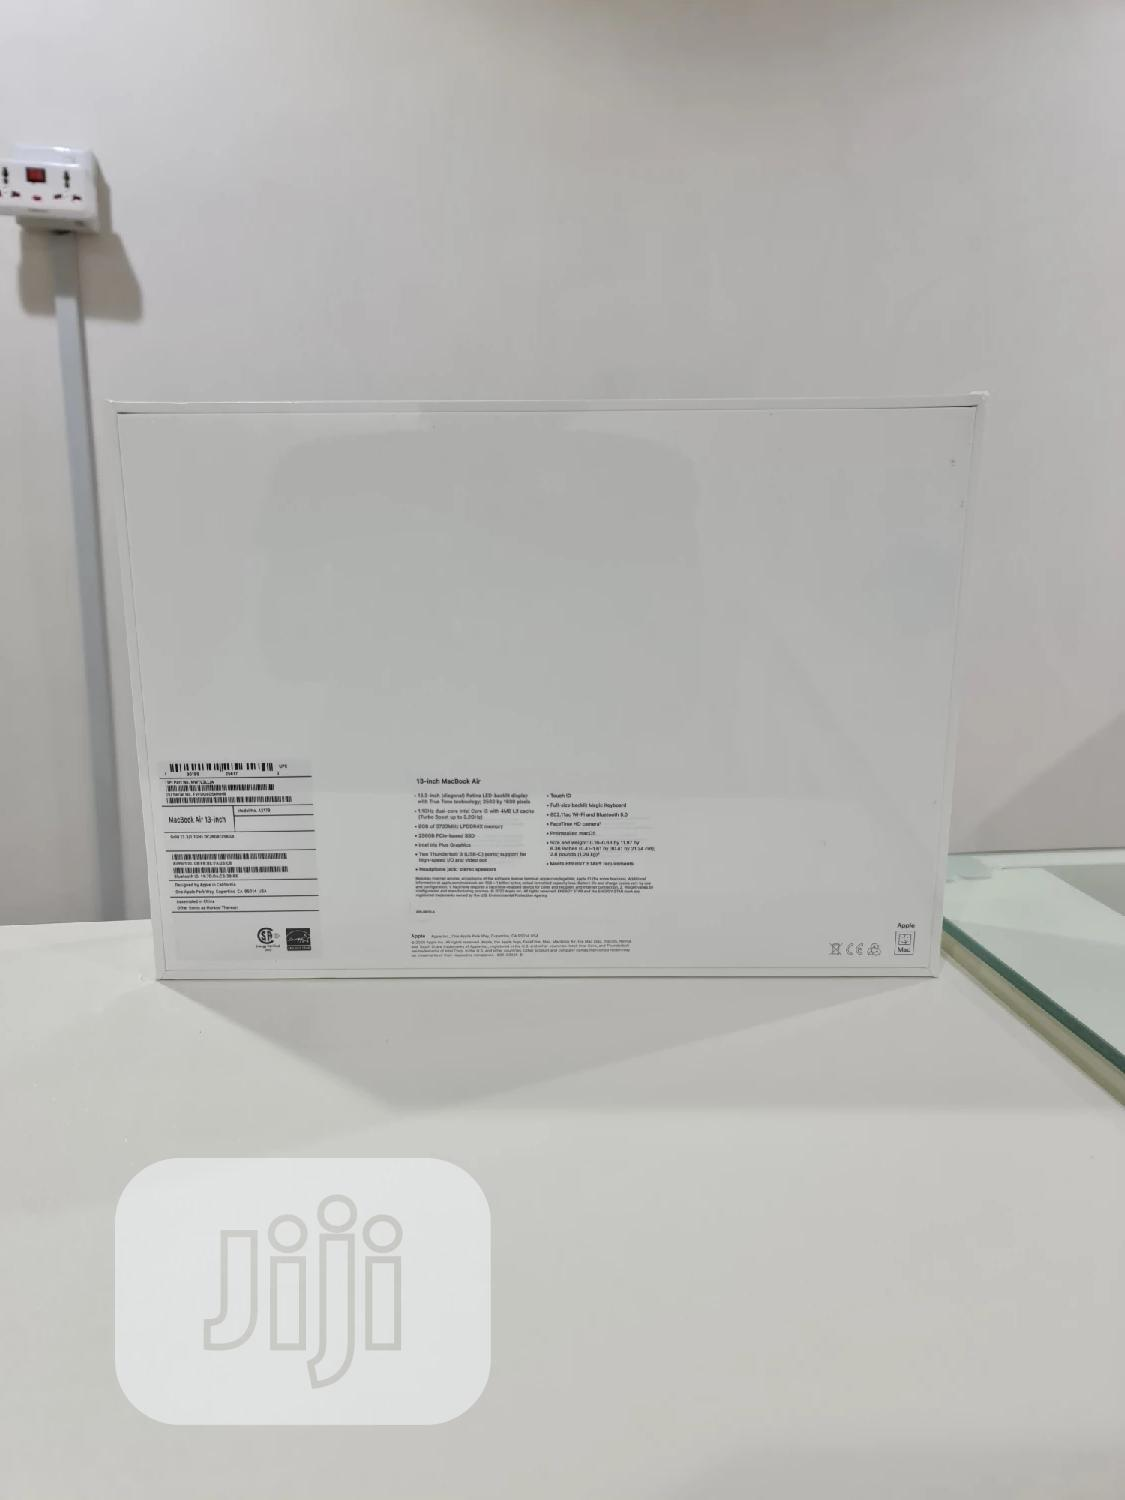 New Laptop Apple MacBook Air 8GB Intel Core I3 SSD 256GB | Laptops & Computers for sale in Wuse 2, Abuja (FCT) State, Nigeria